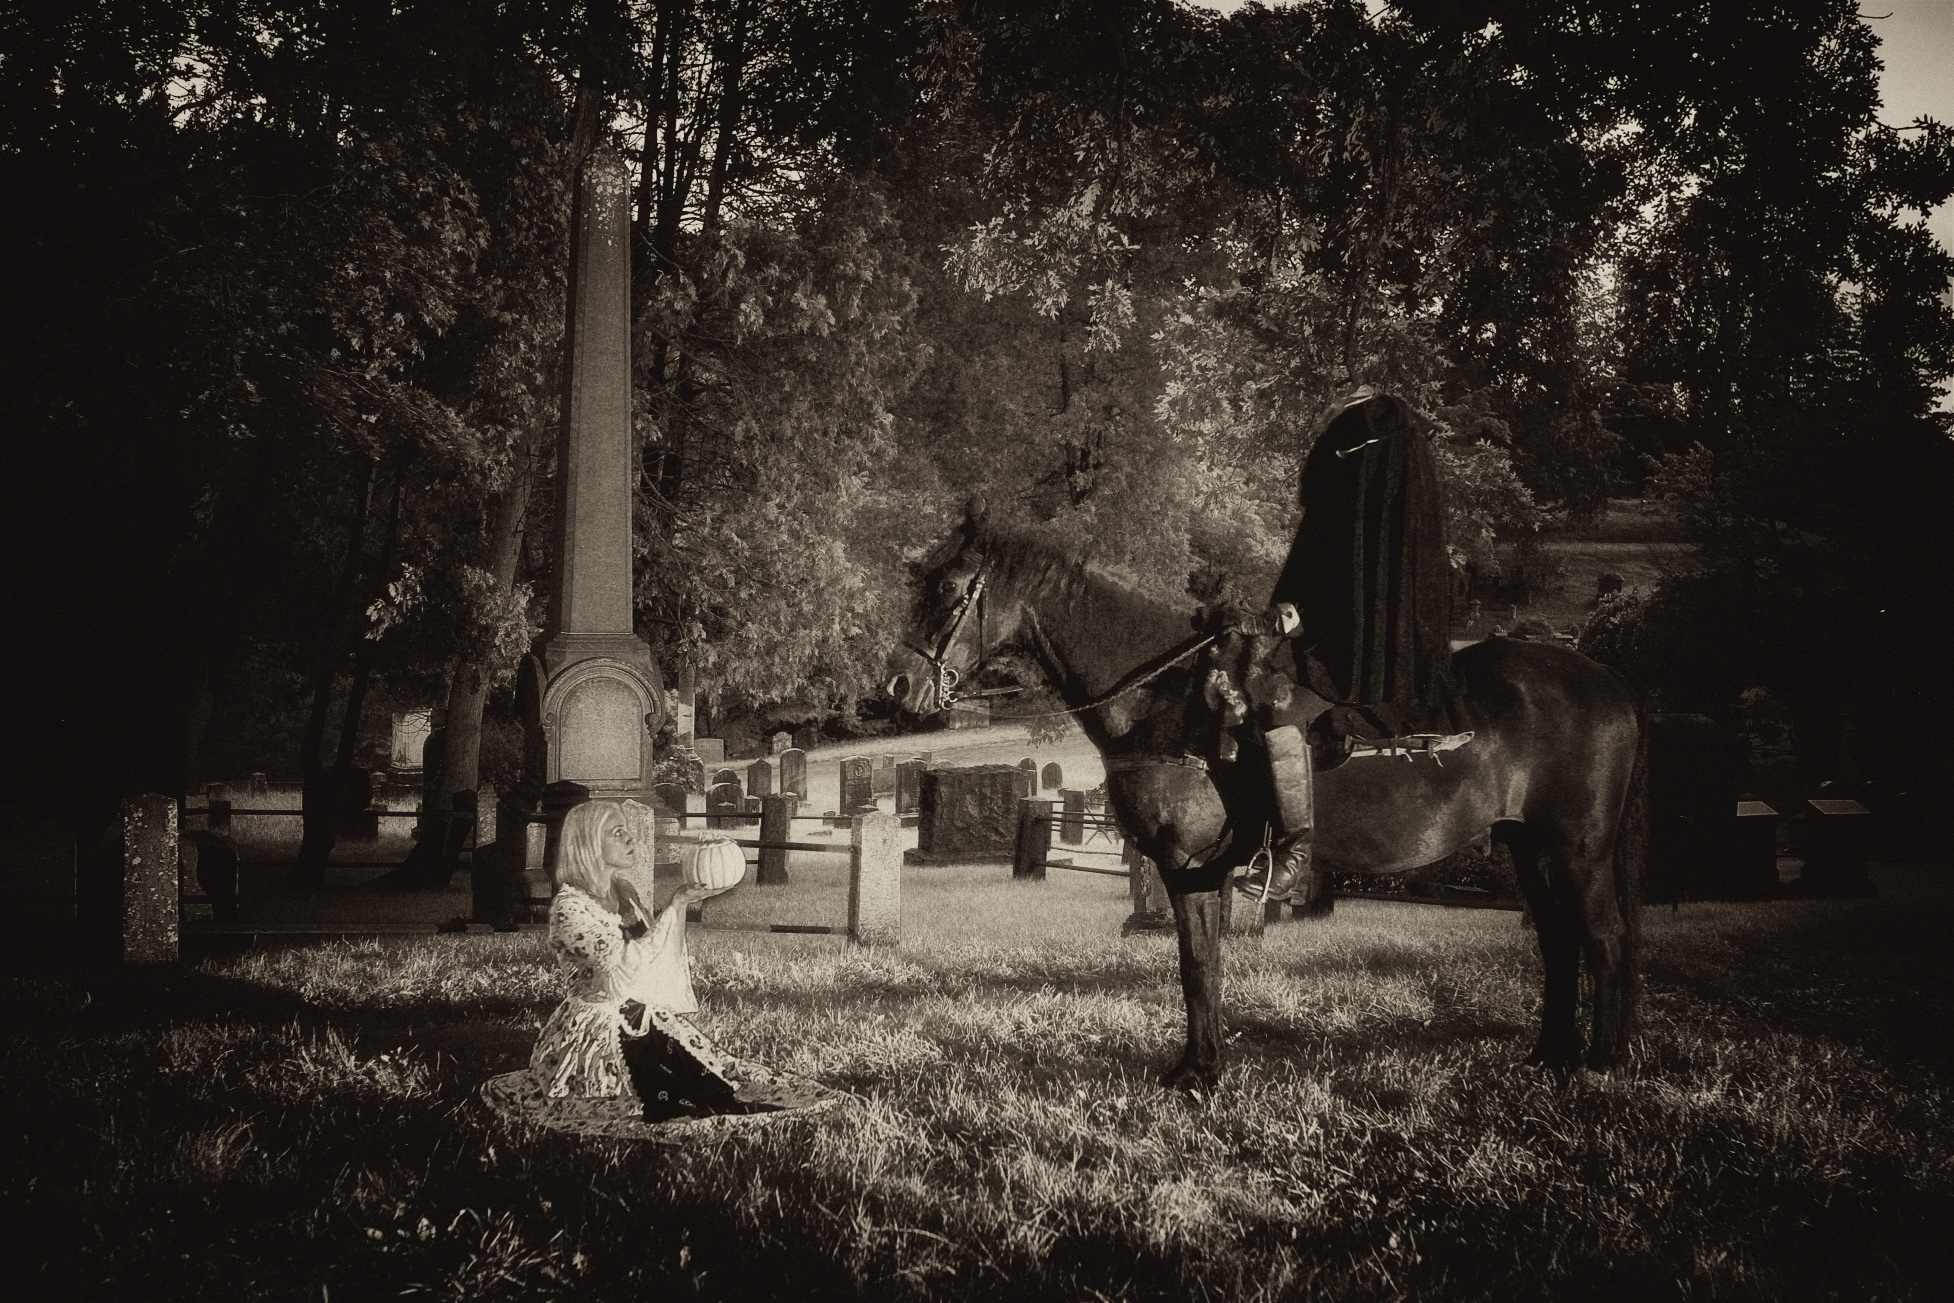 Headless horseman at Sleepy Hollow Cemetery with Katrina Van Tassel